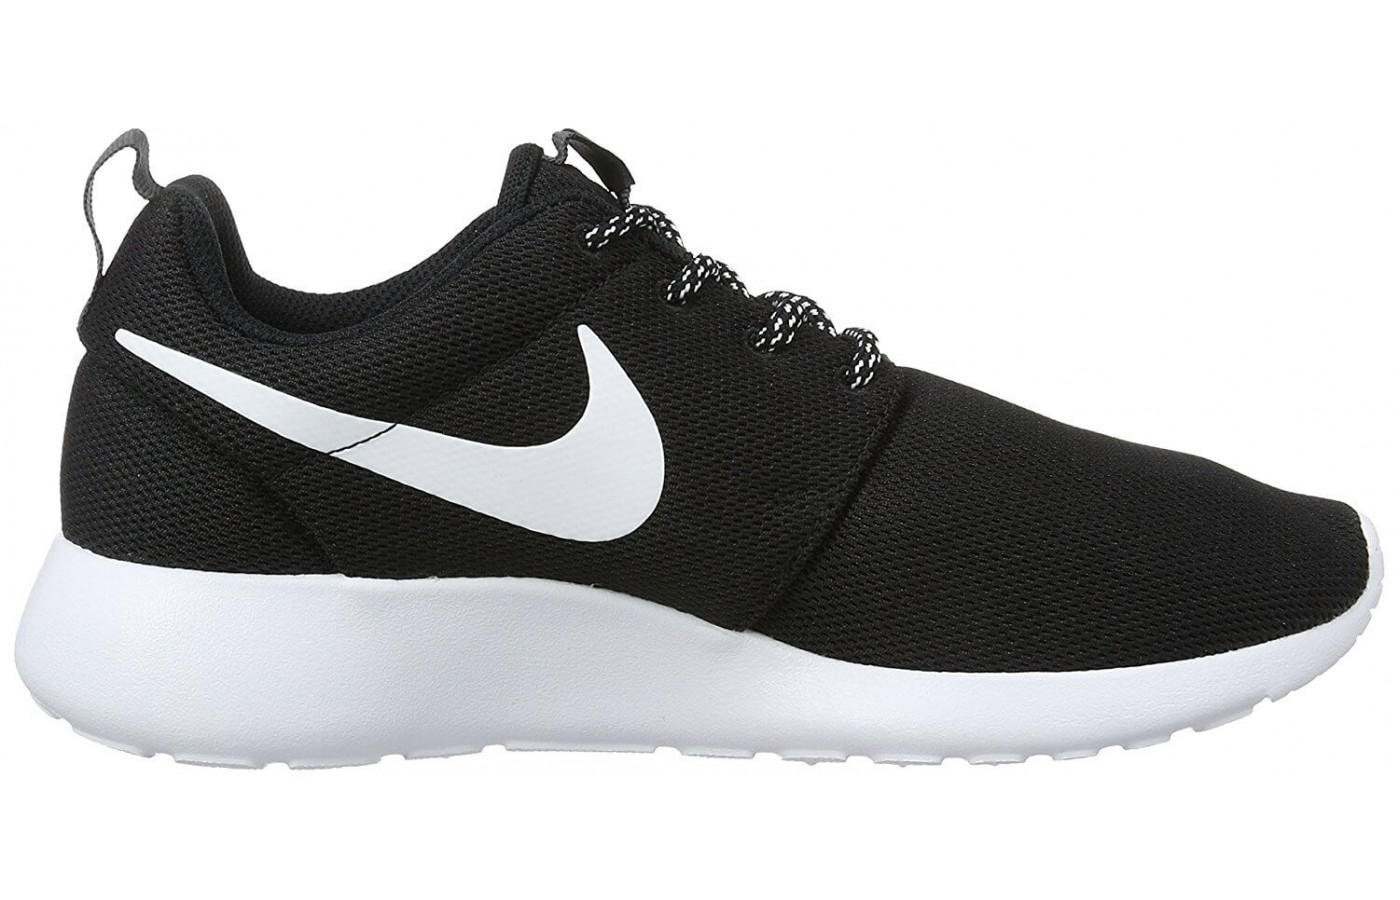 new product 30673 29fbc Nike Roshe One Reviewed - To Buy or Not in Apr 2019